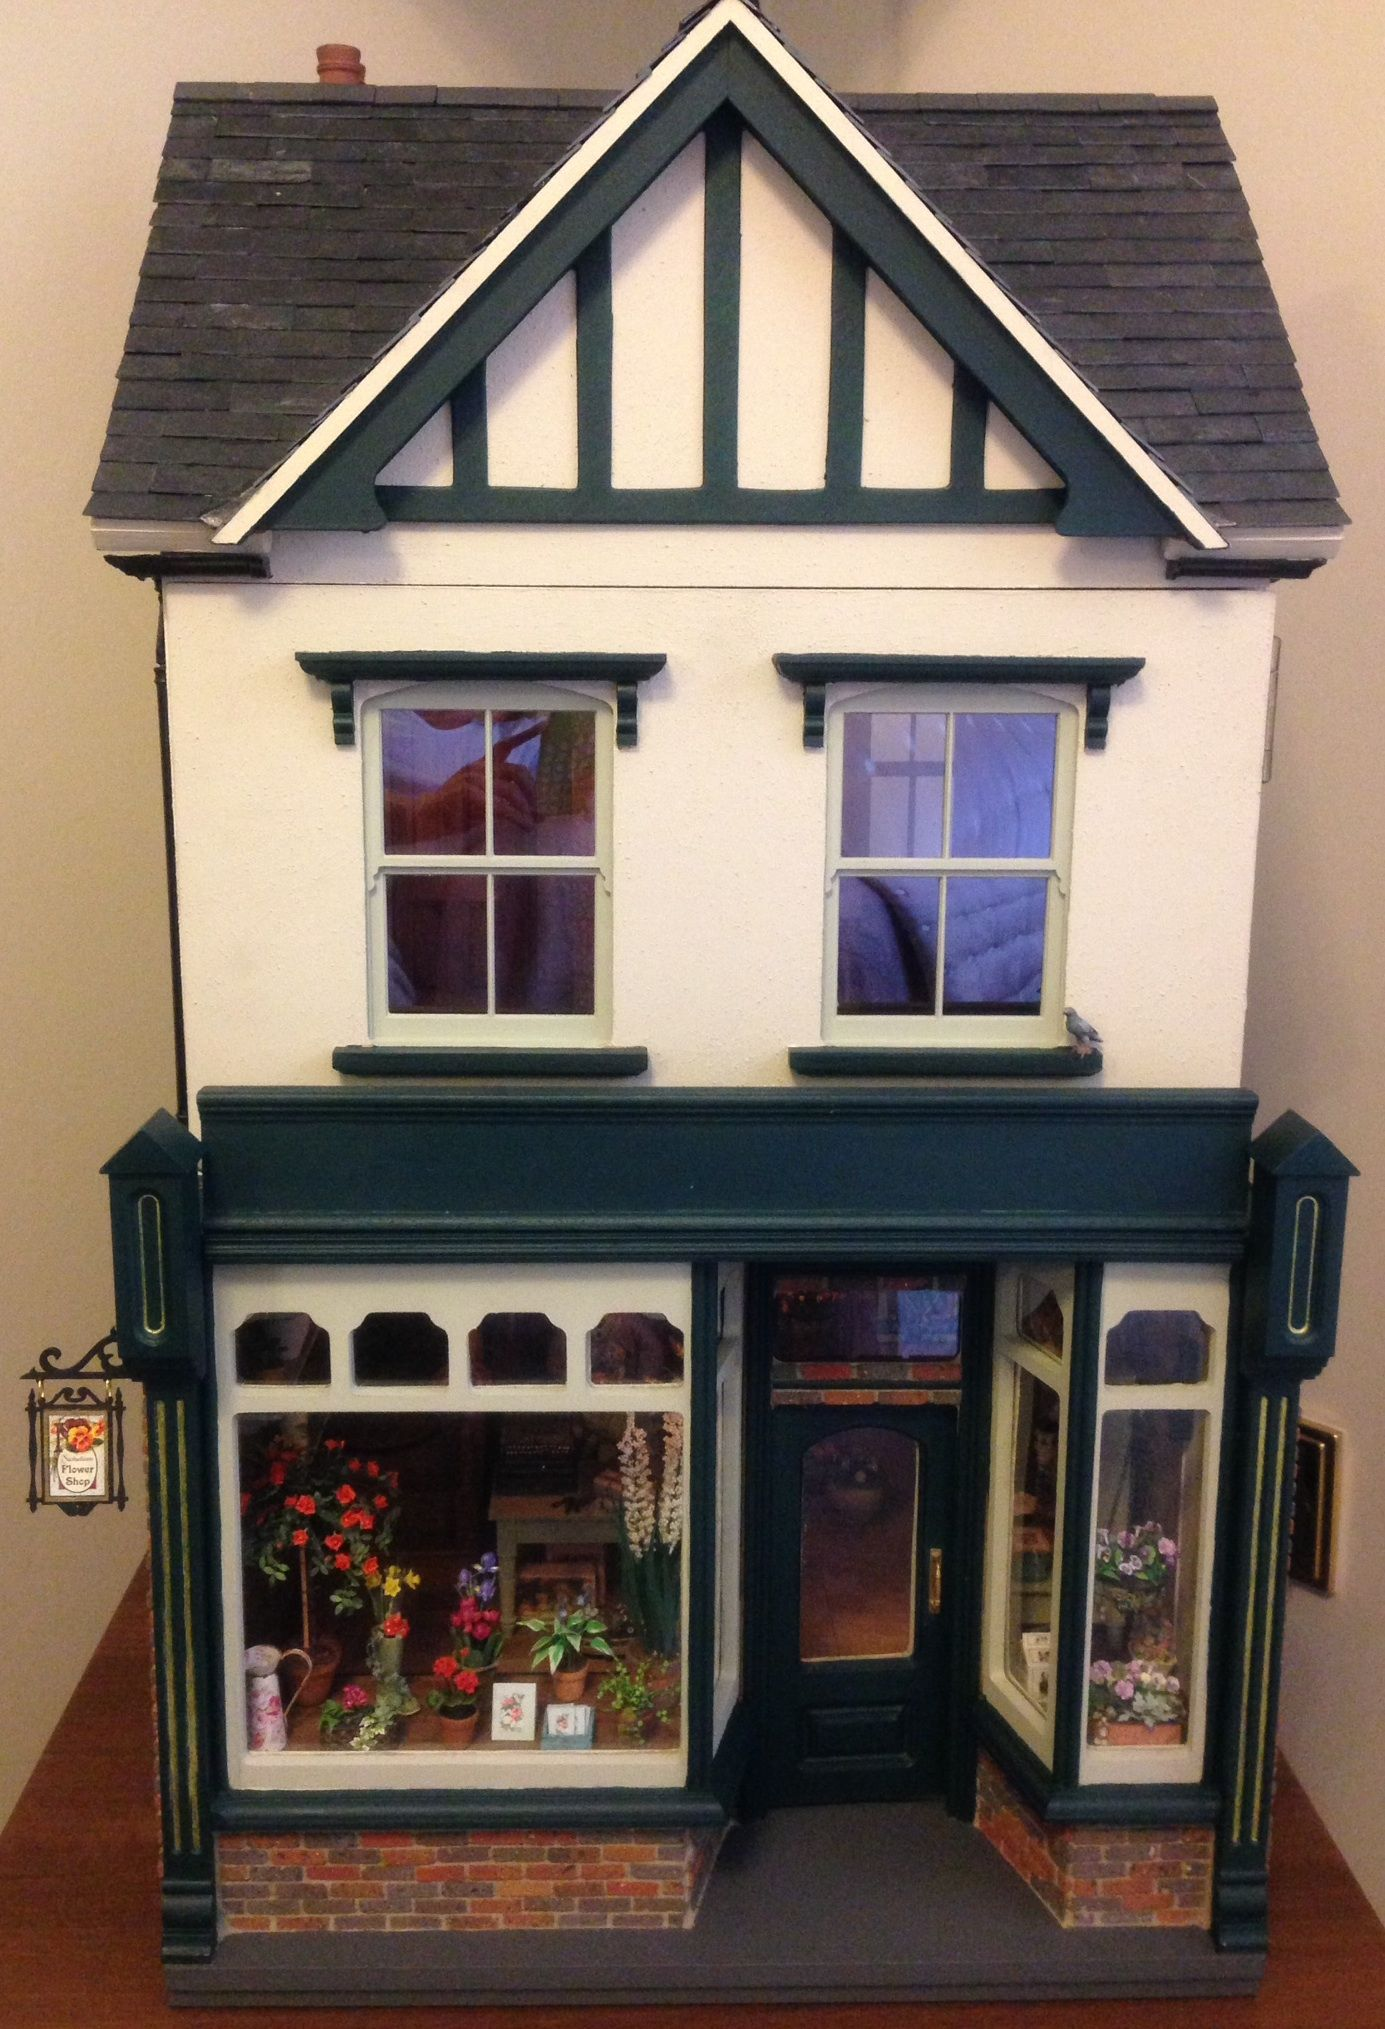 For Sale Houses And Shops Dolls Houses Past Amp Present